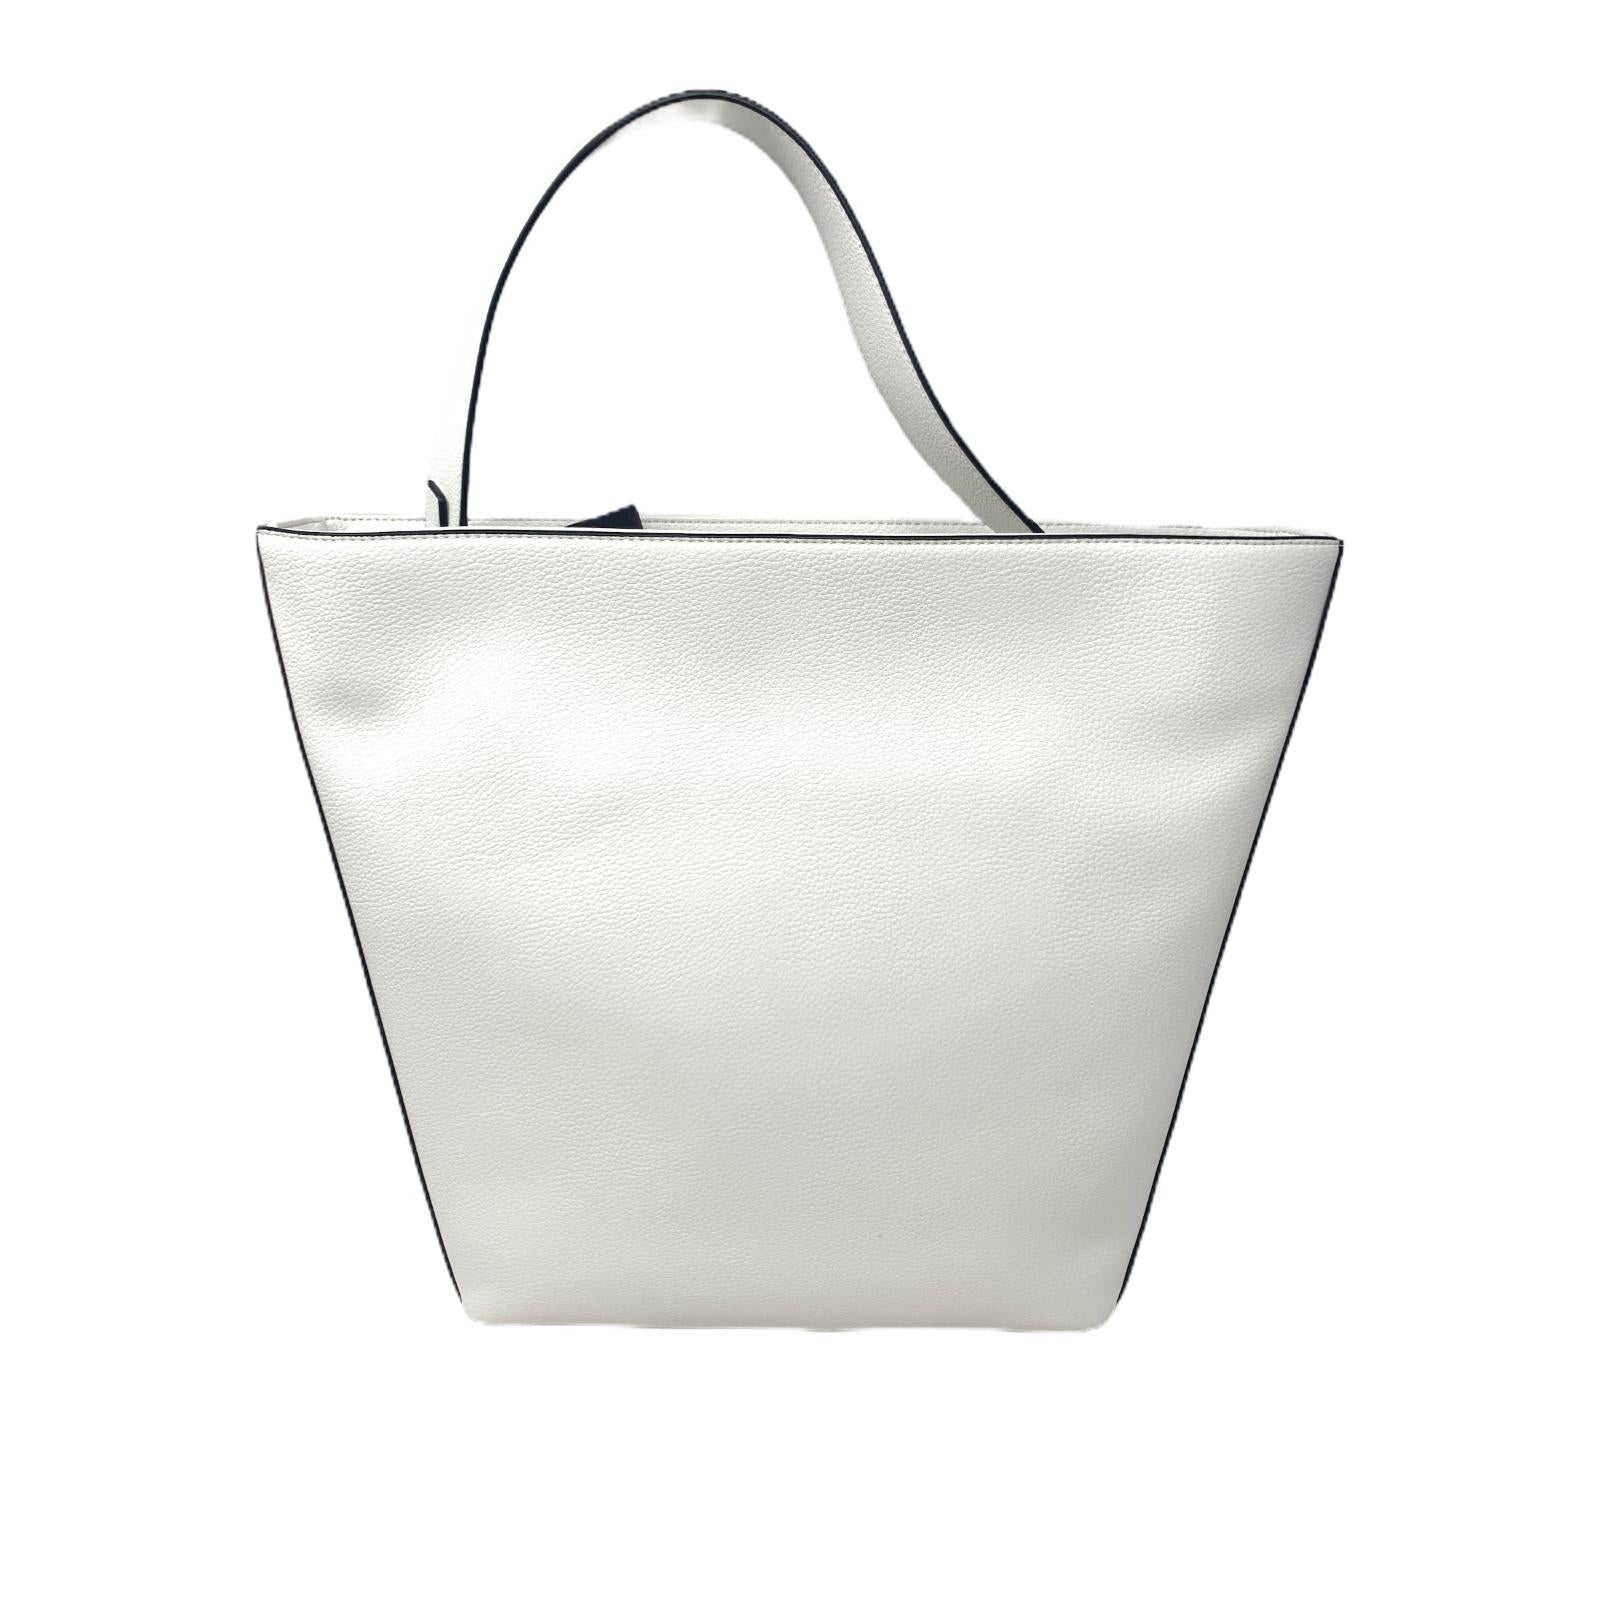 Borsa Calvin Klein Bag Shopper Shop Bianca